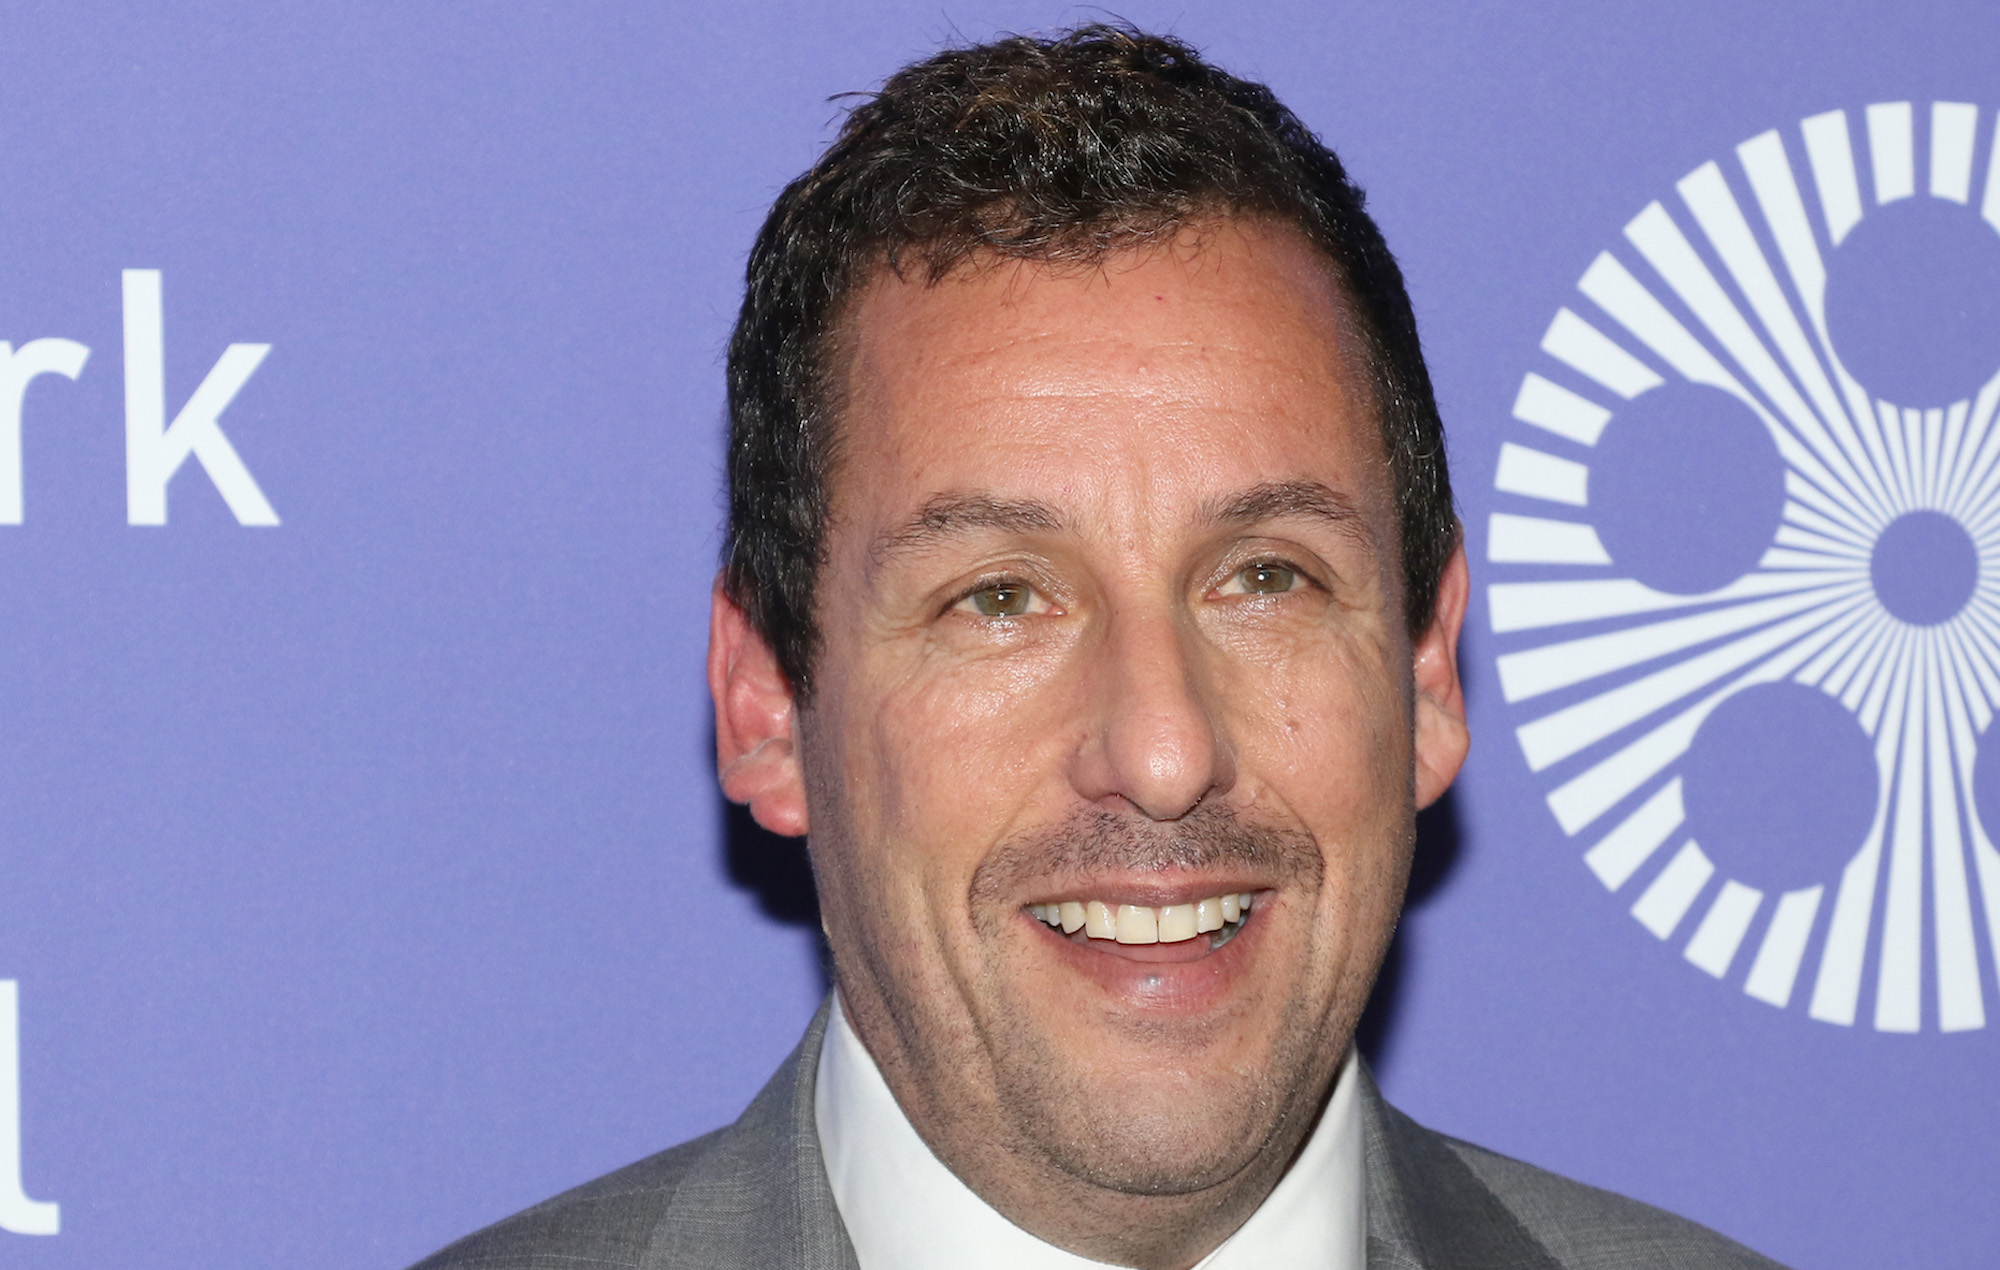 """Adam Sandler's college acting coach once told him to """"choose another path"""" - NME Live"""